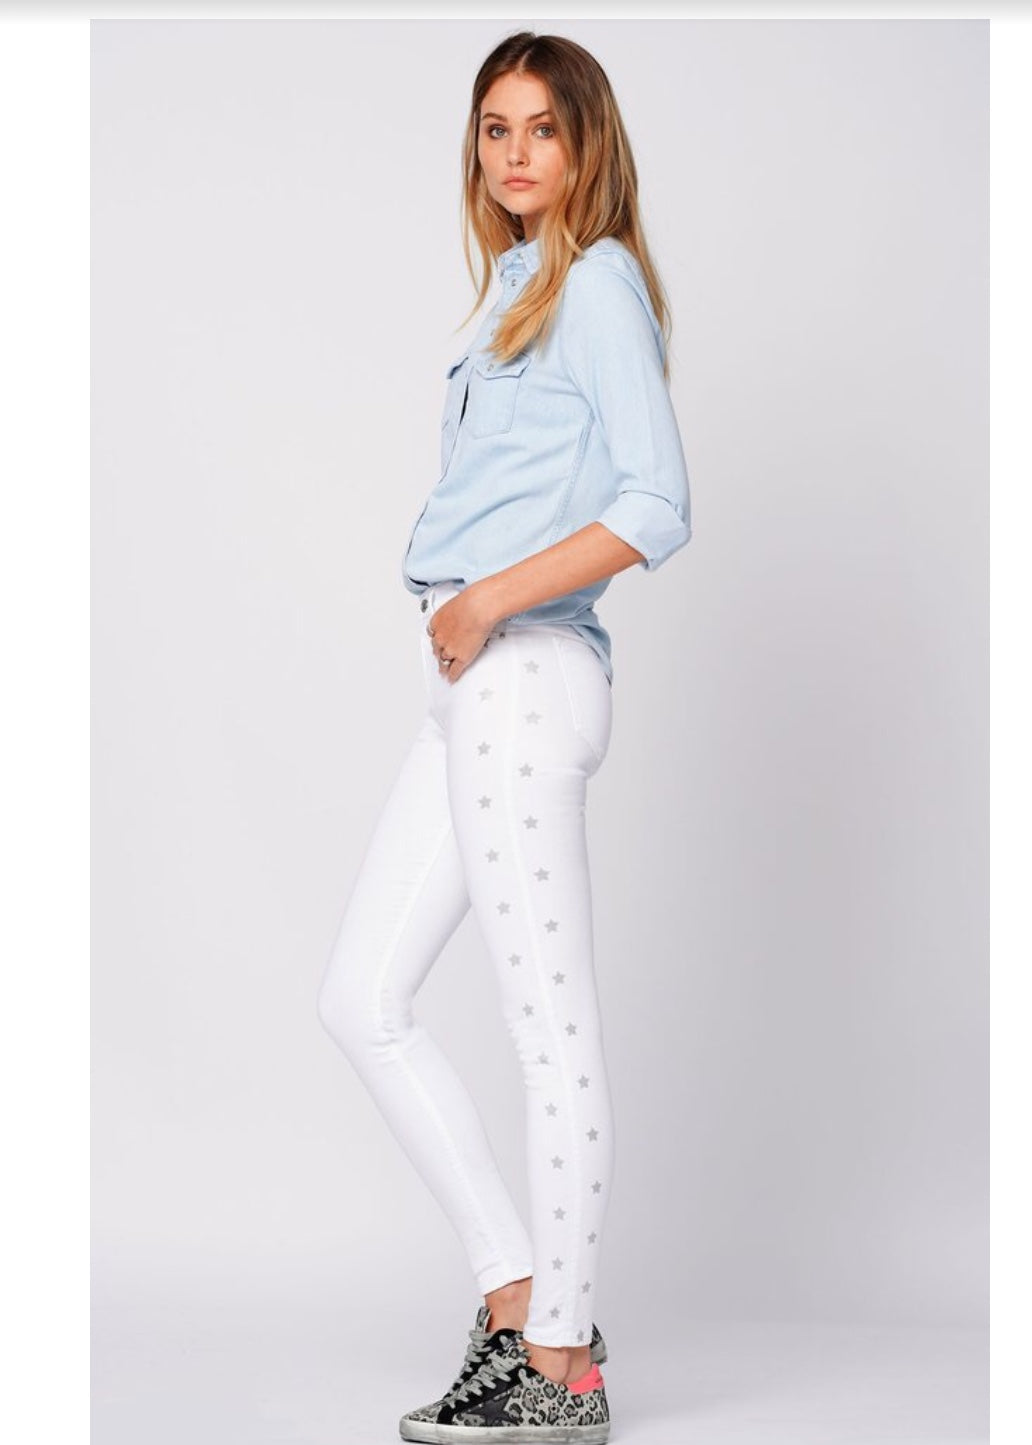 Black Orchid GISELSE HIGH RISE SKINNY WITH RACER STARS - SNOW WHITE - Luxe EQ